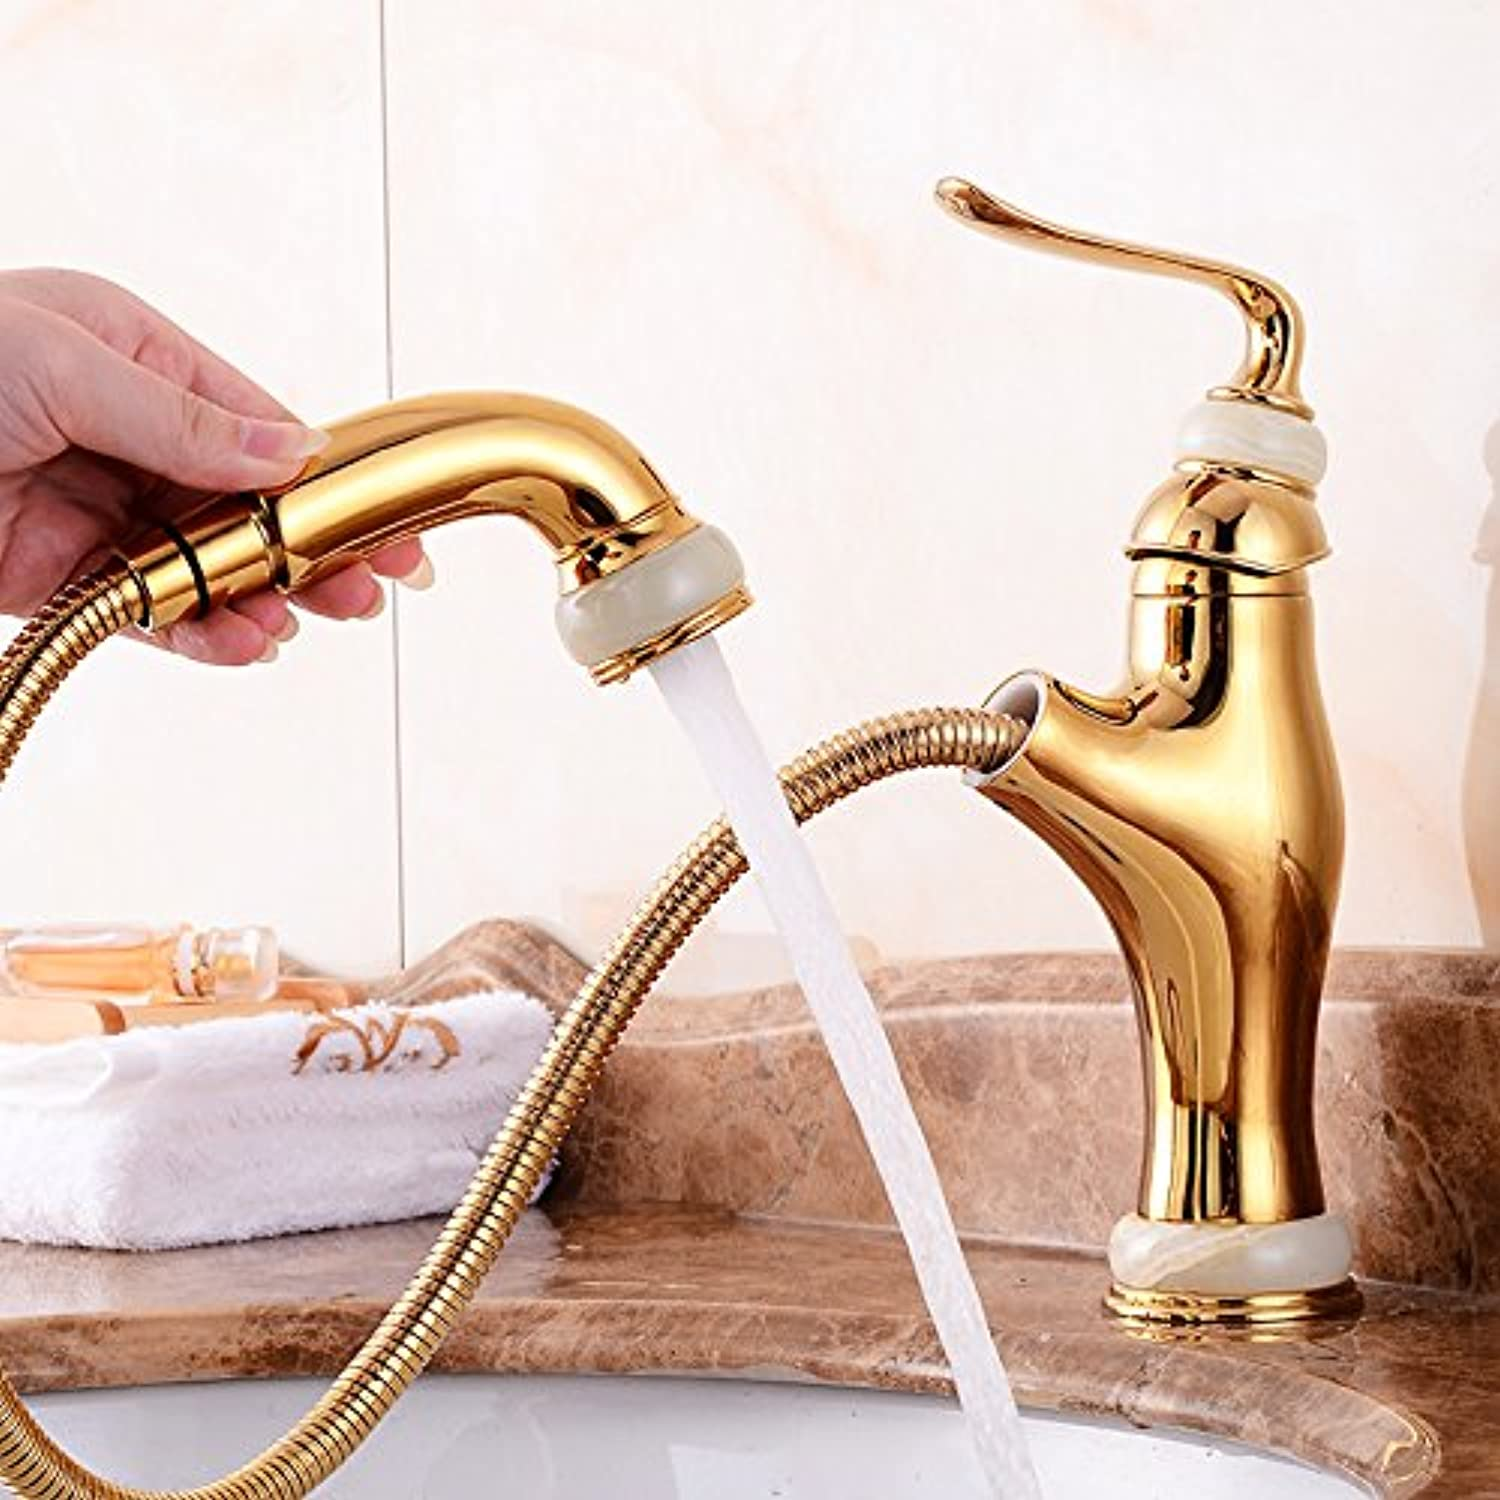 Hlluya Professional Sink Mixer Tap Kitchen Faucet The bathroom sink cold water taps for pull-down faucet full copper